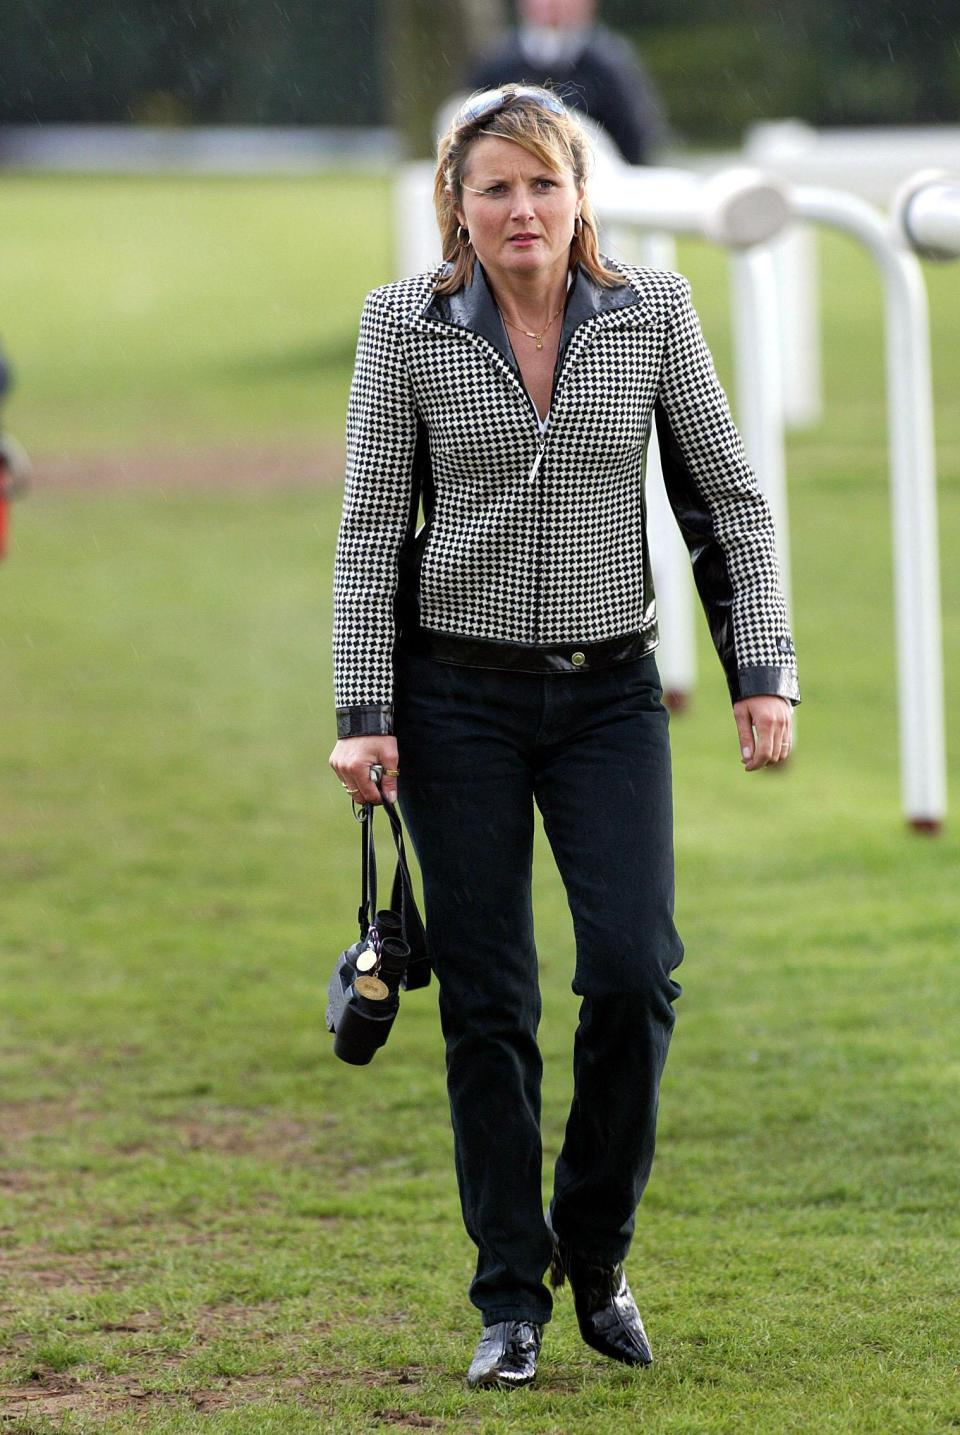 She has been forced to sack stable-hands for harassing other staff